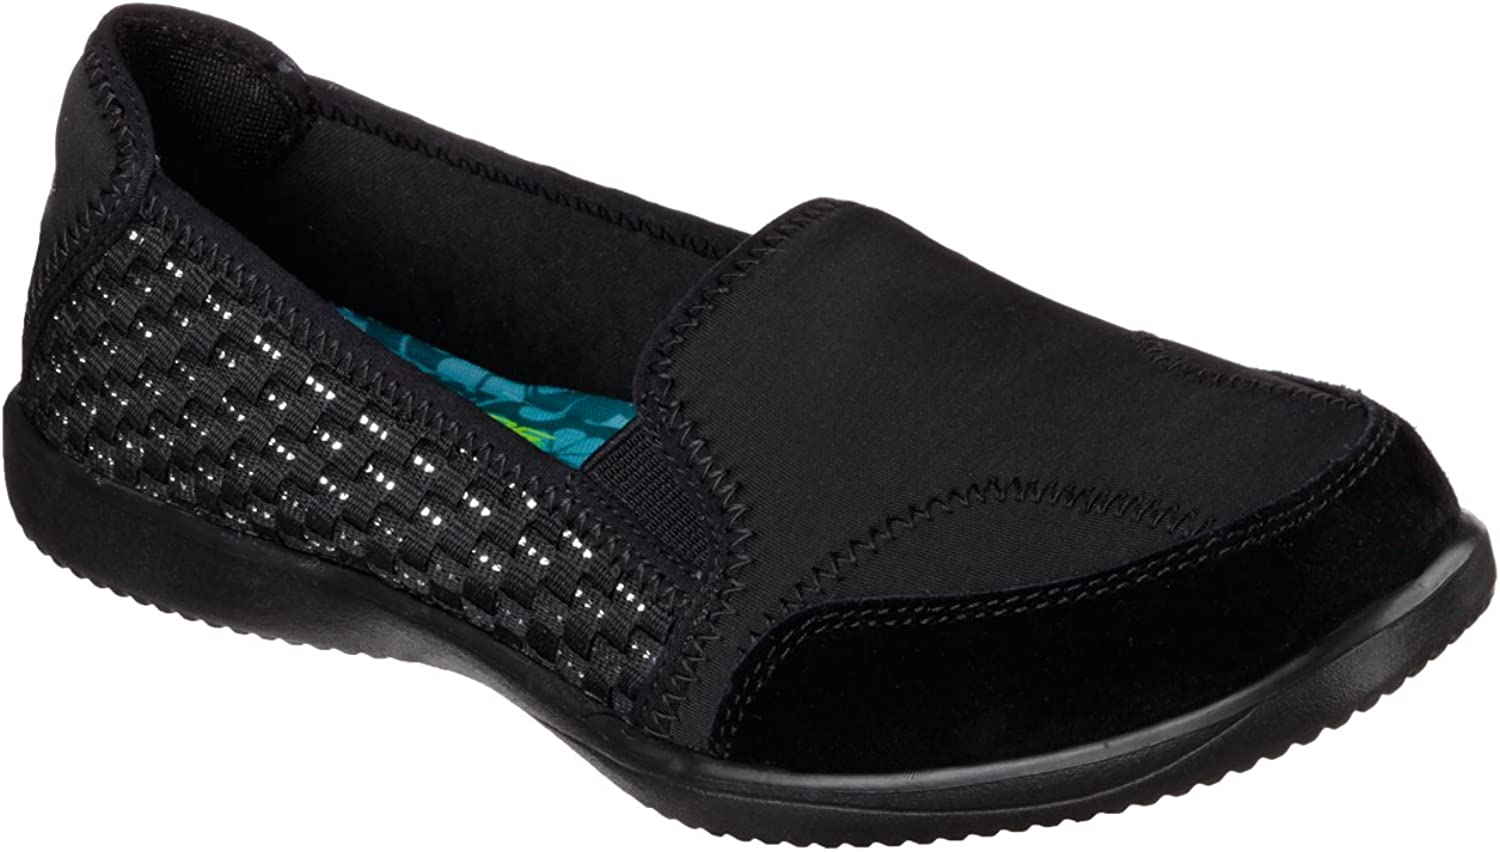 Skechers Relaxed Fit Spectrum Showy Womens Slip On Flats Black 5.5